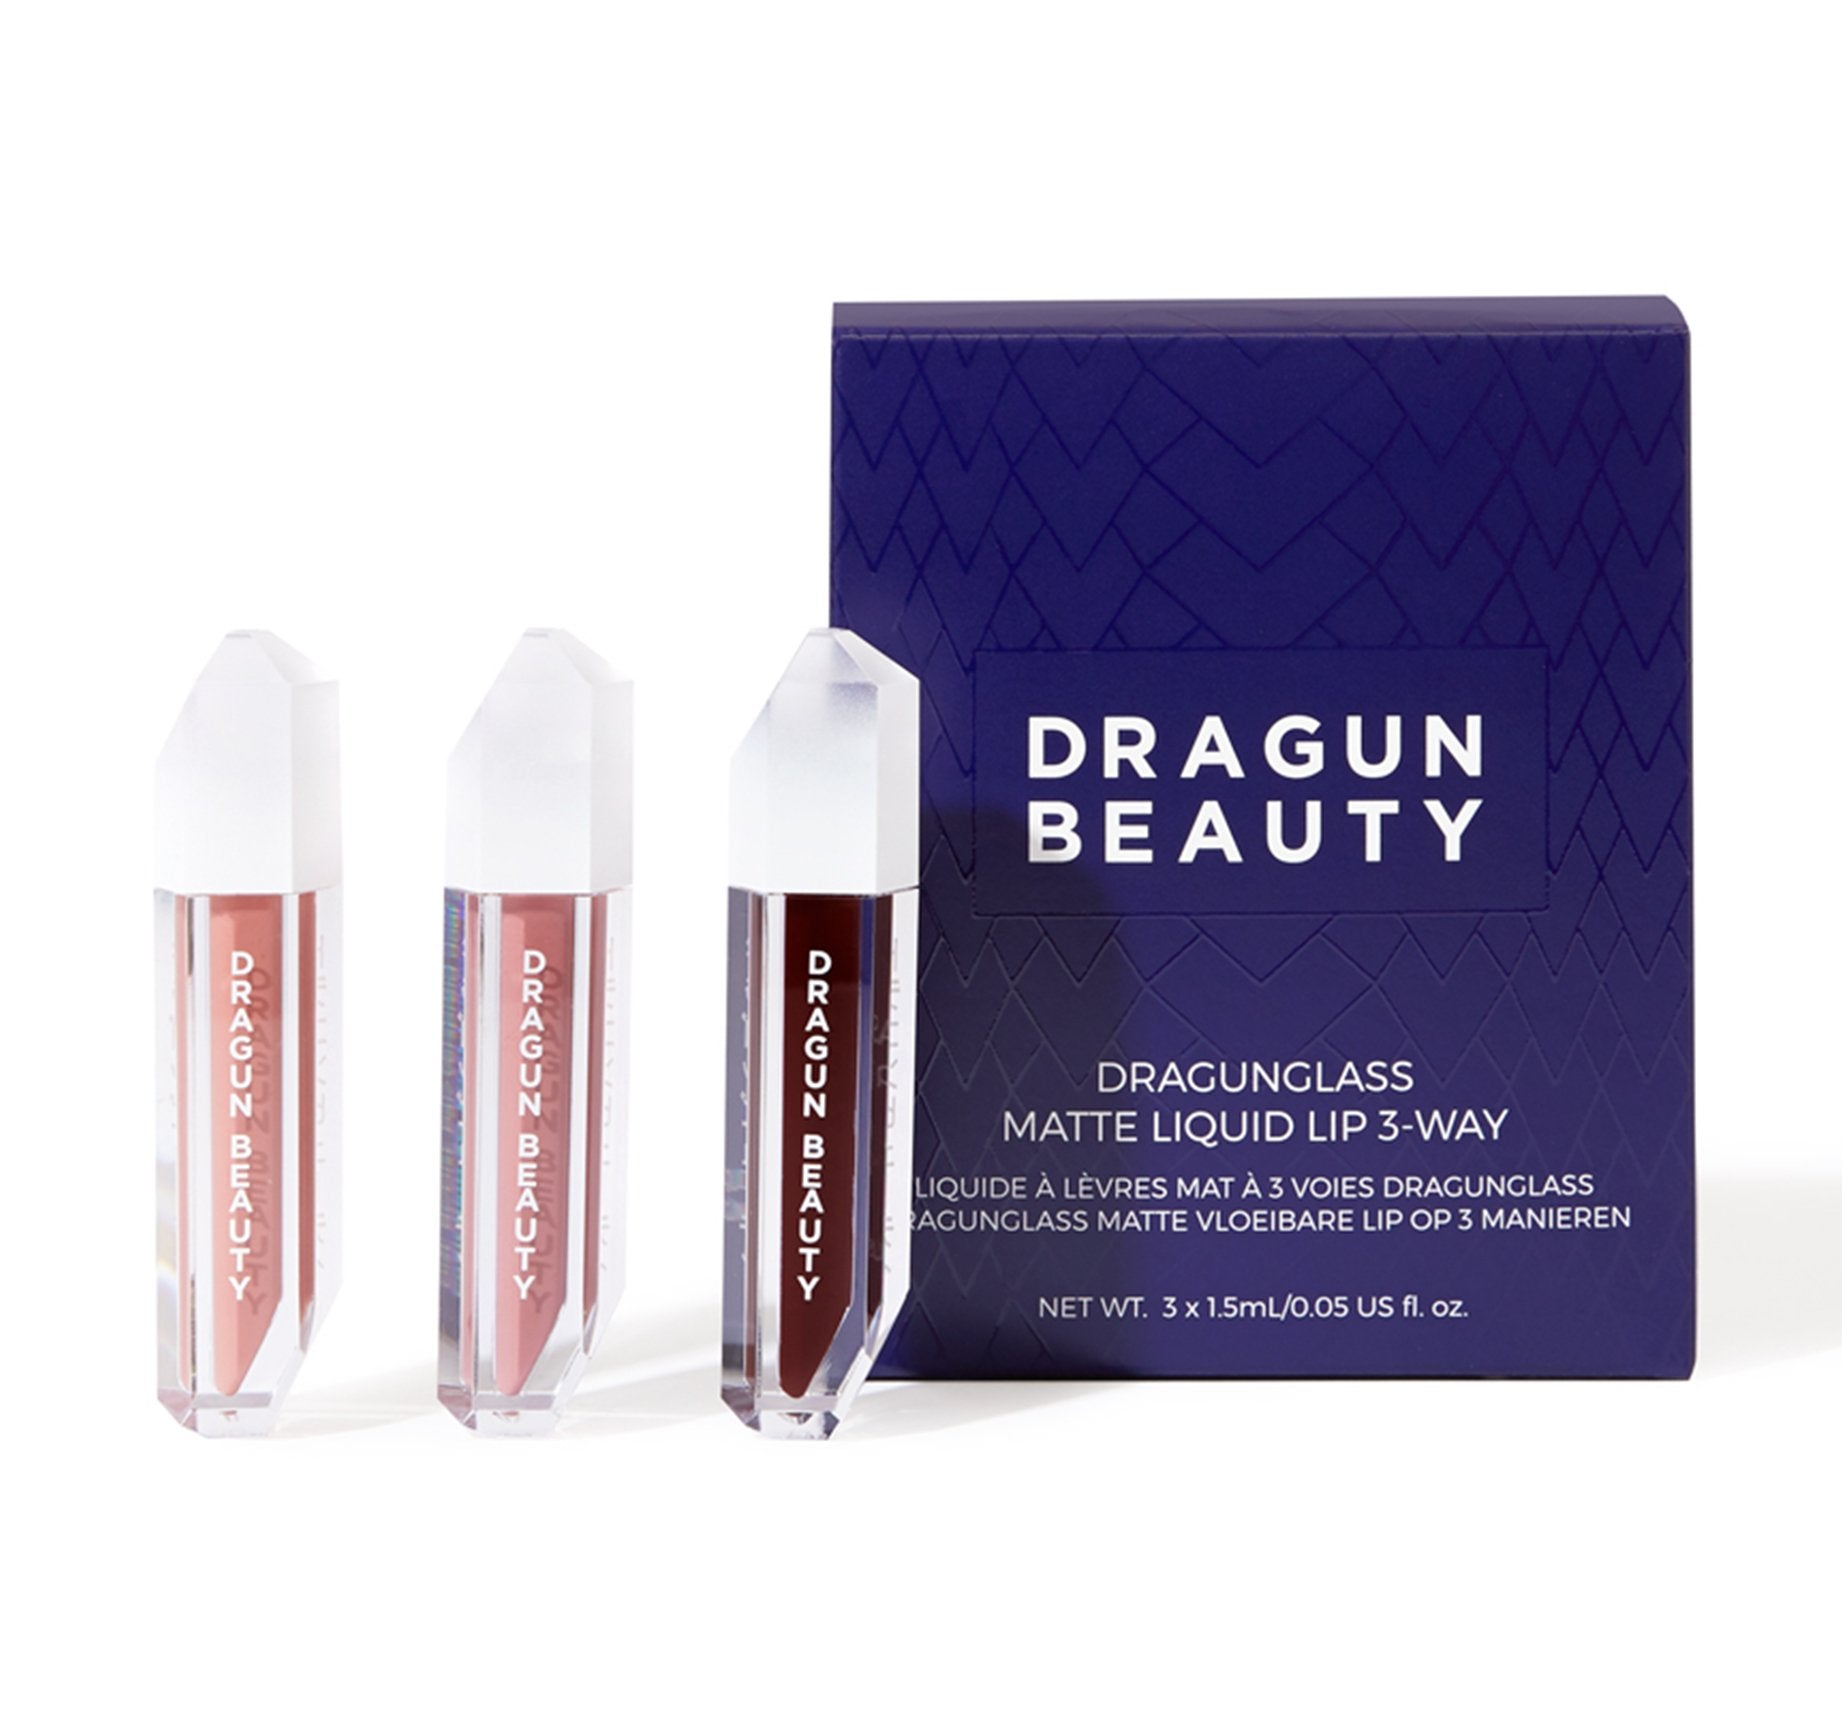 DRAGUNGLASS 3-WAY LIQUID LIP MINIS, view larger image